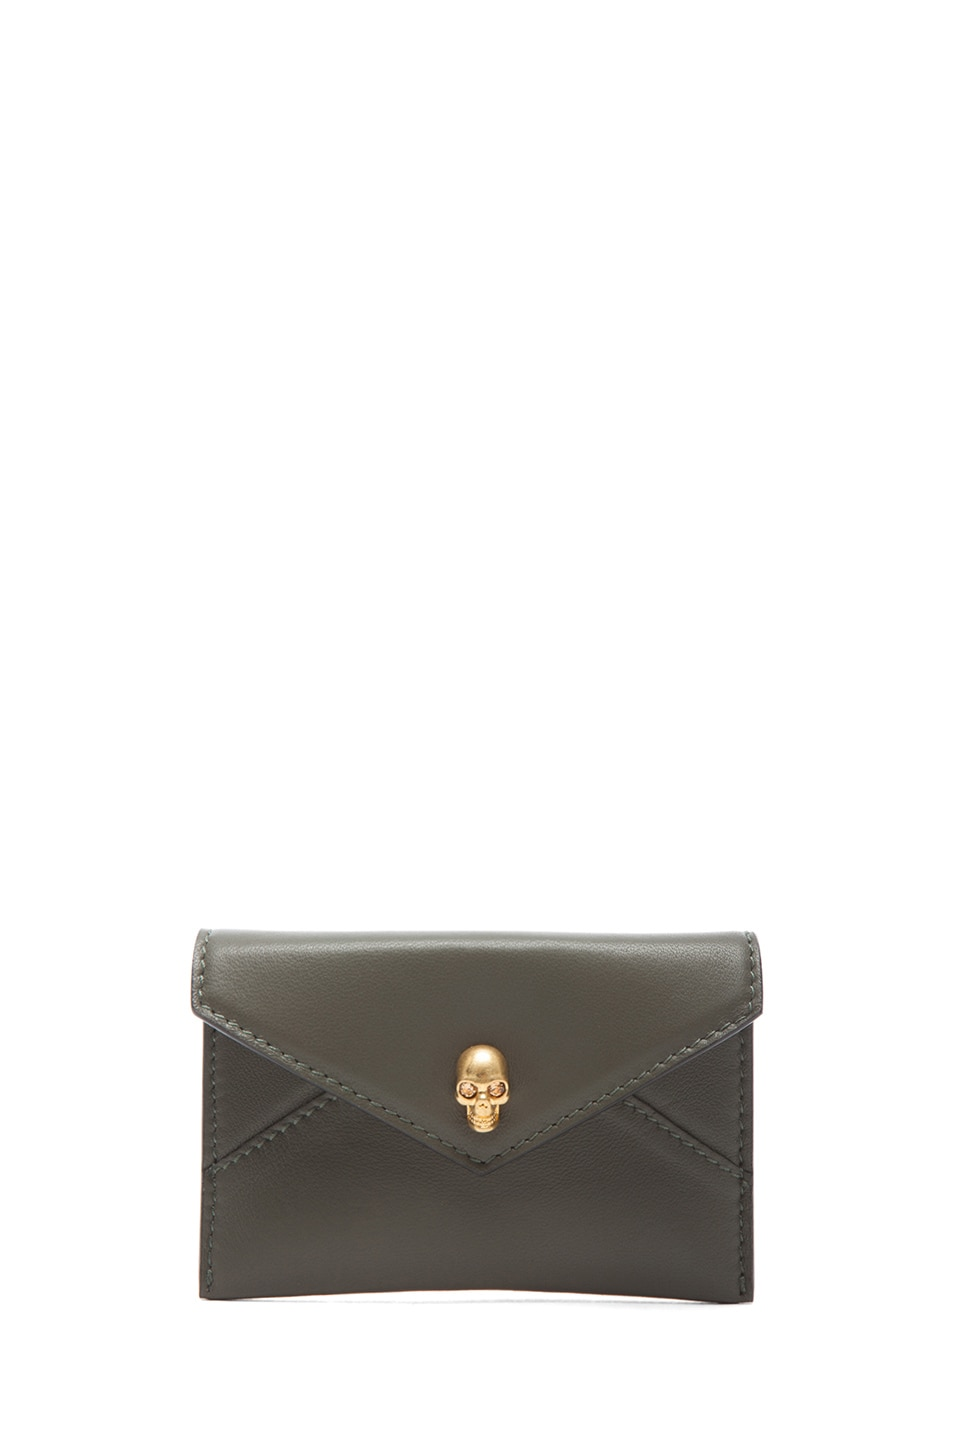 Image 1 of Alexander McQueen Envelope Card Holder in Military